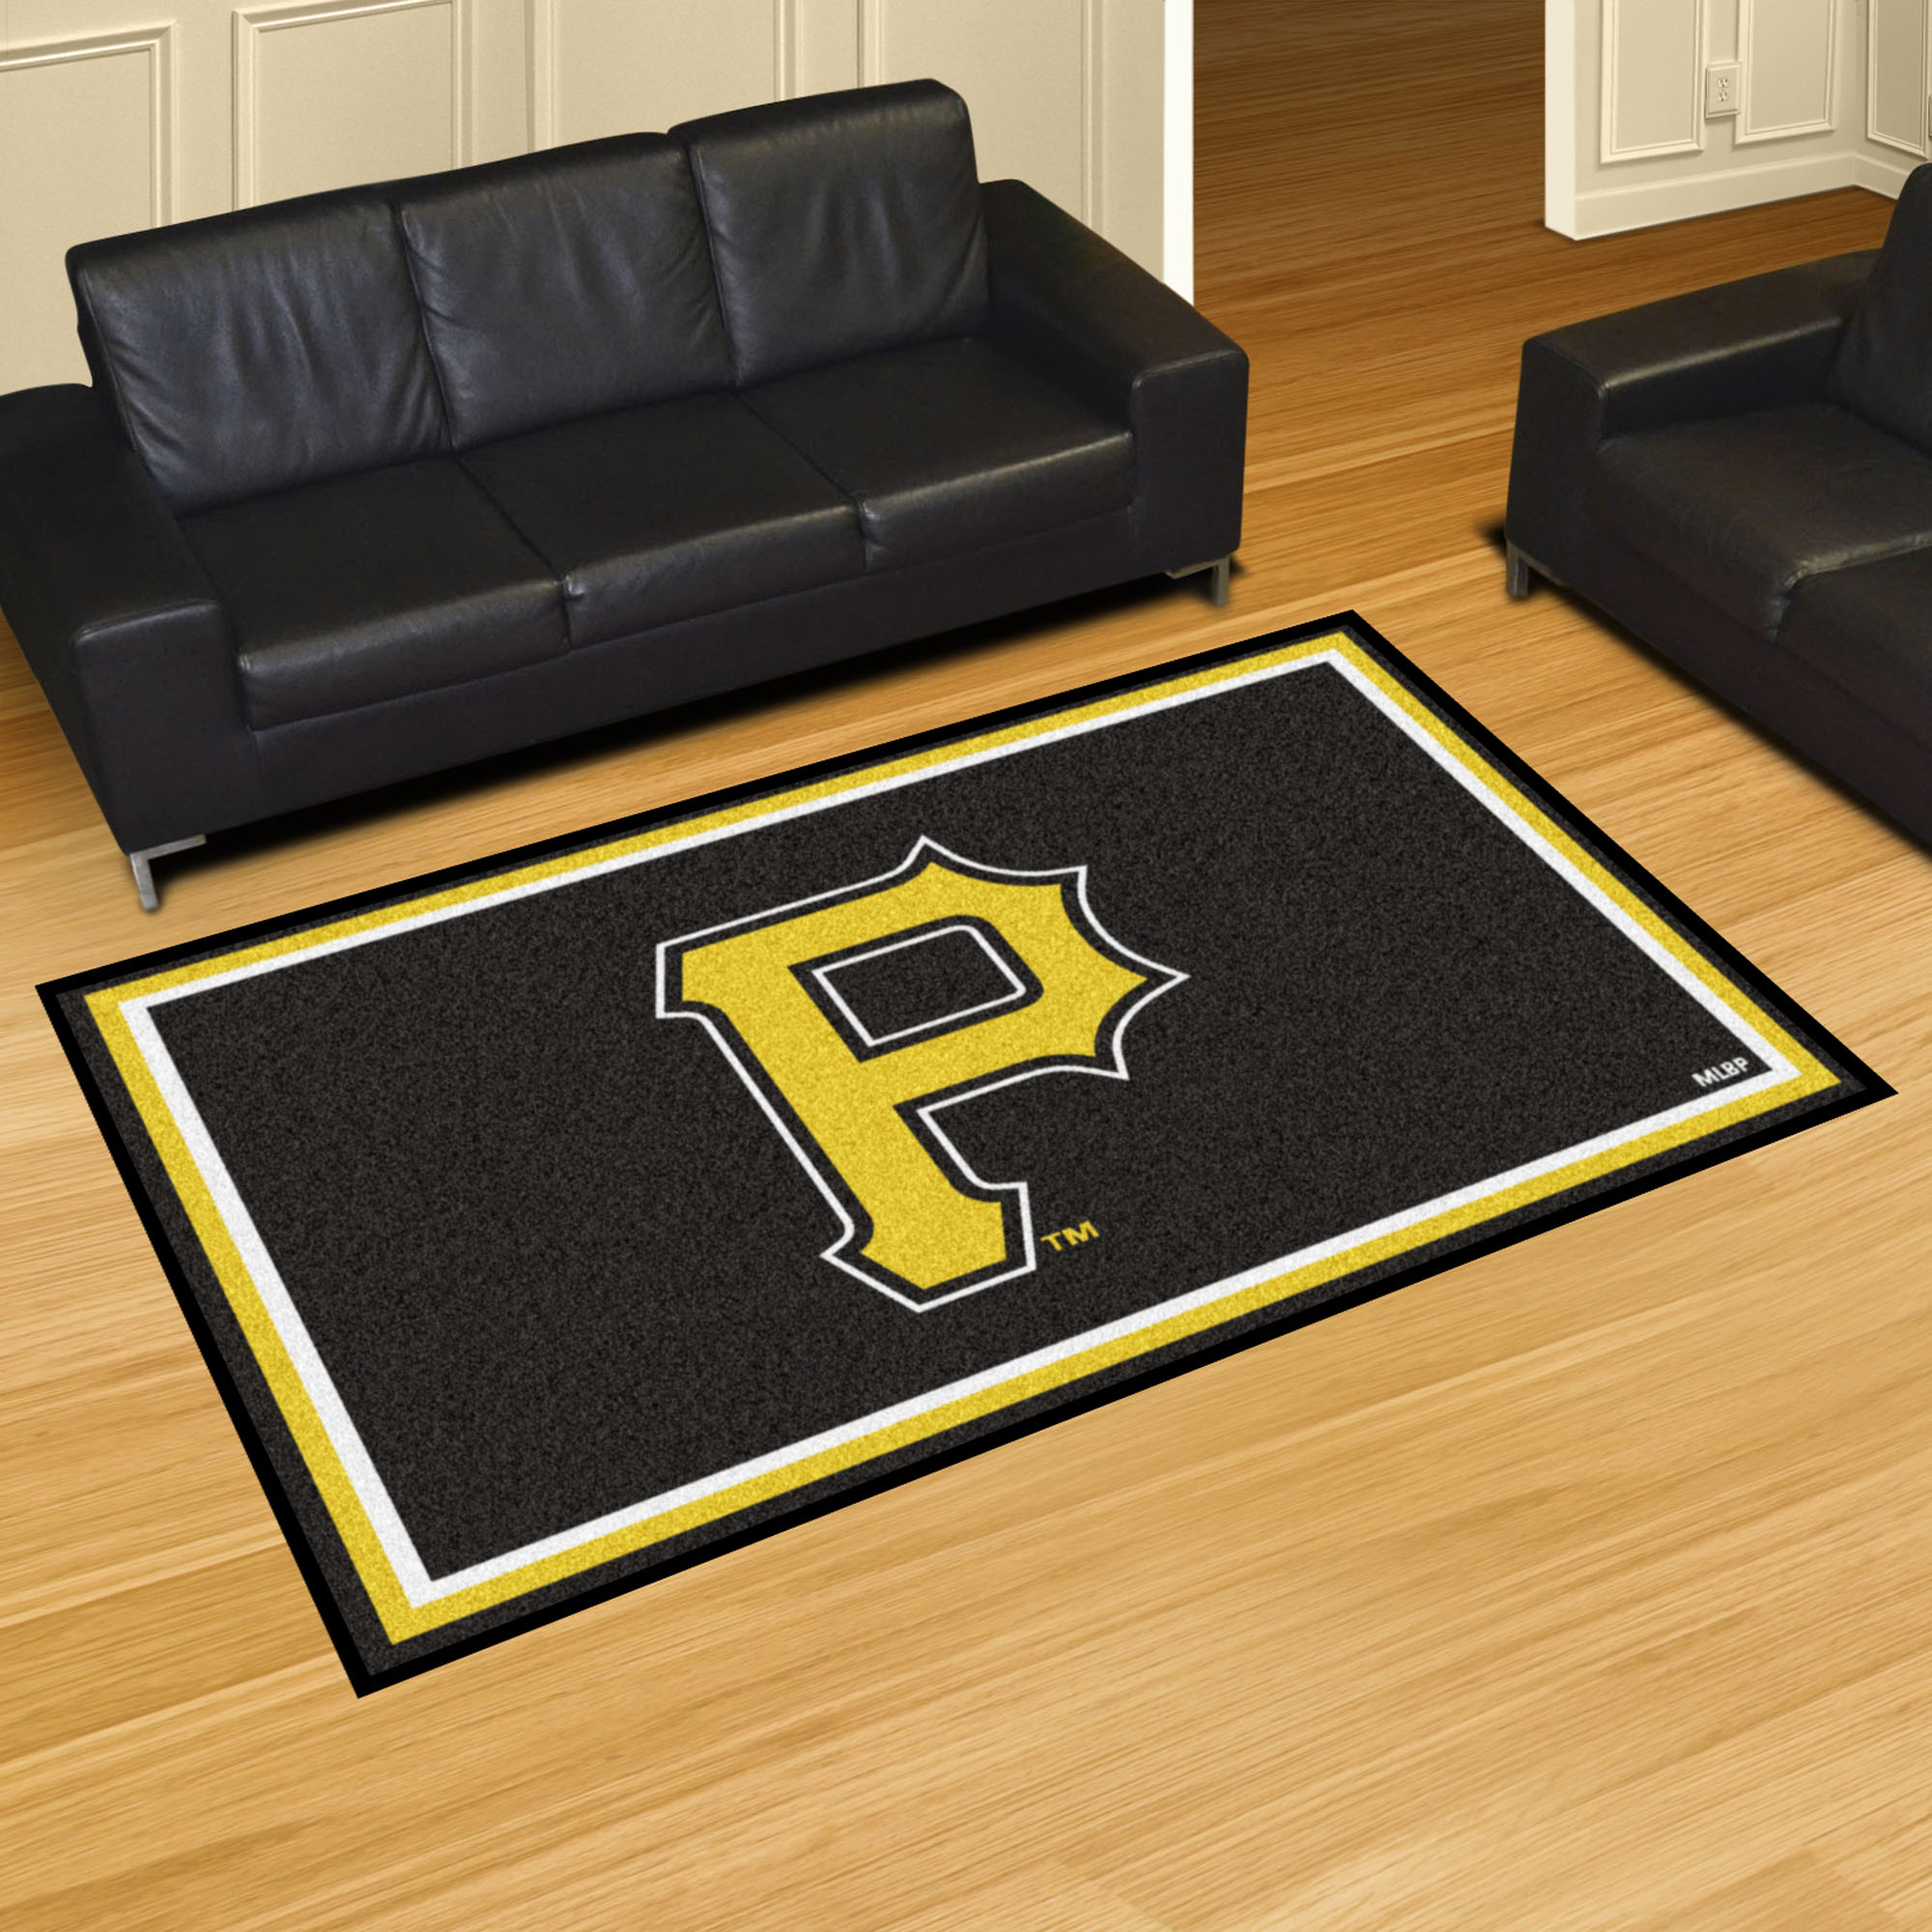 Pittsburgh Pirates 5x8 Area Rug